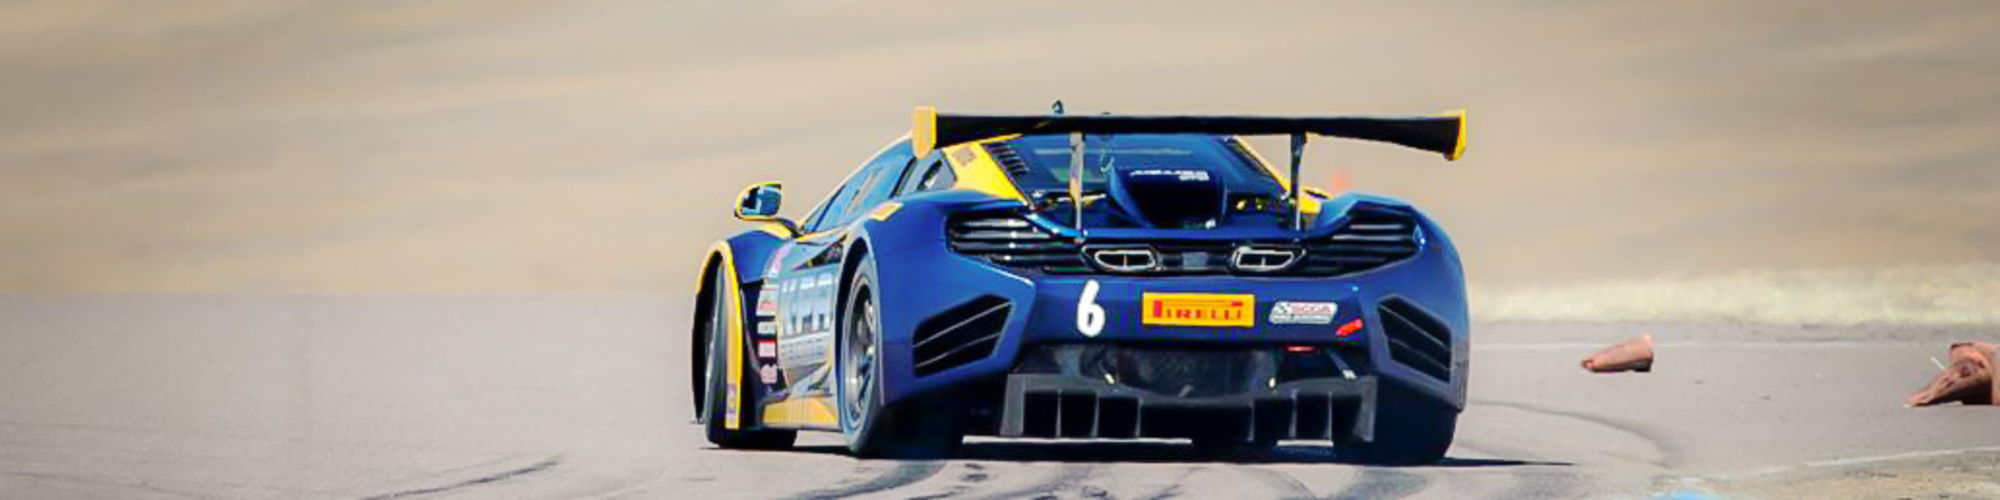 3R Racing cover image